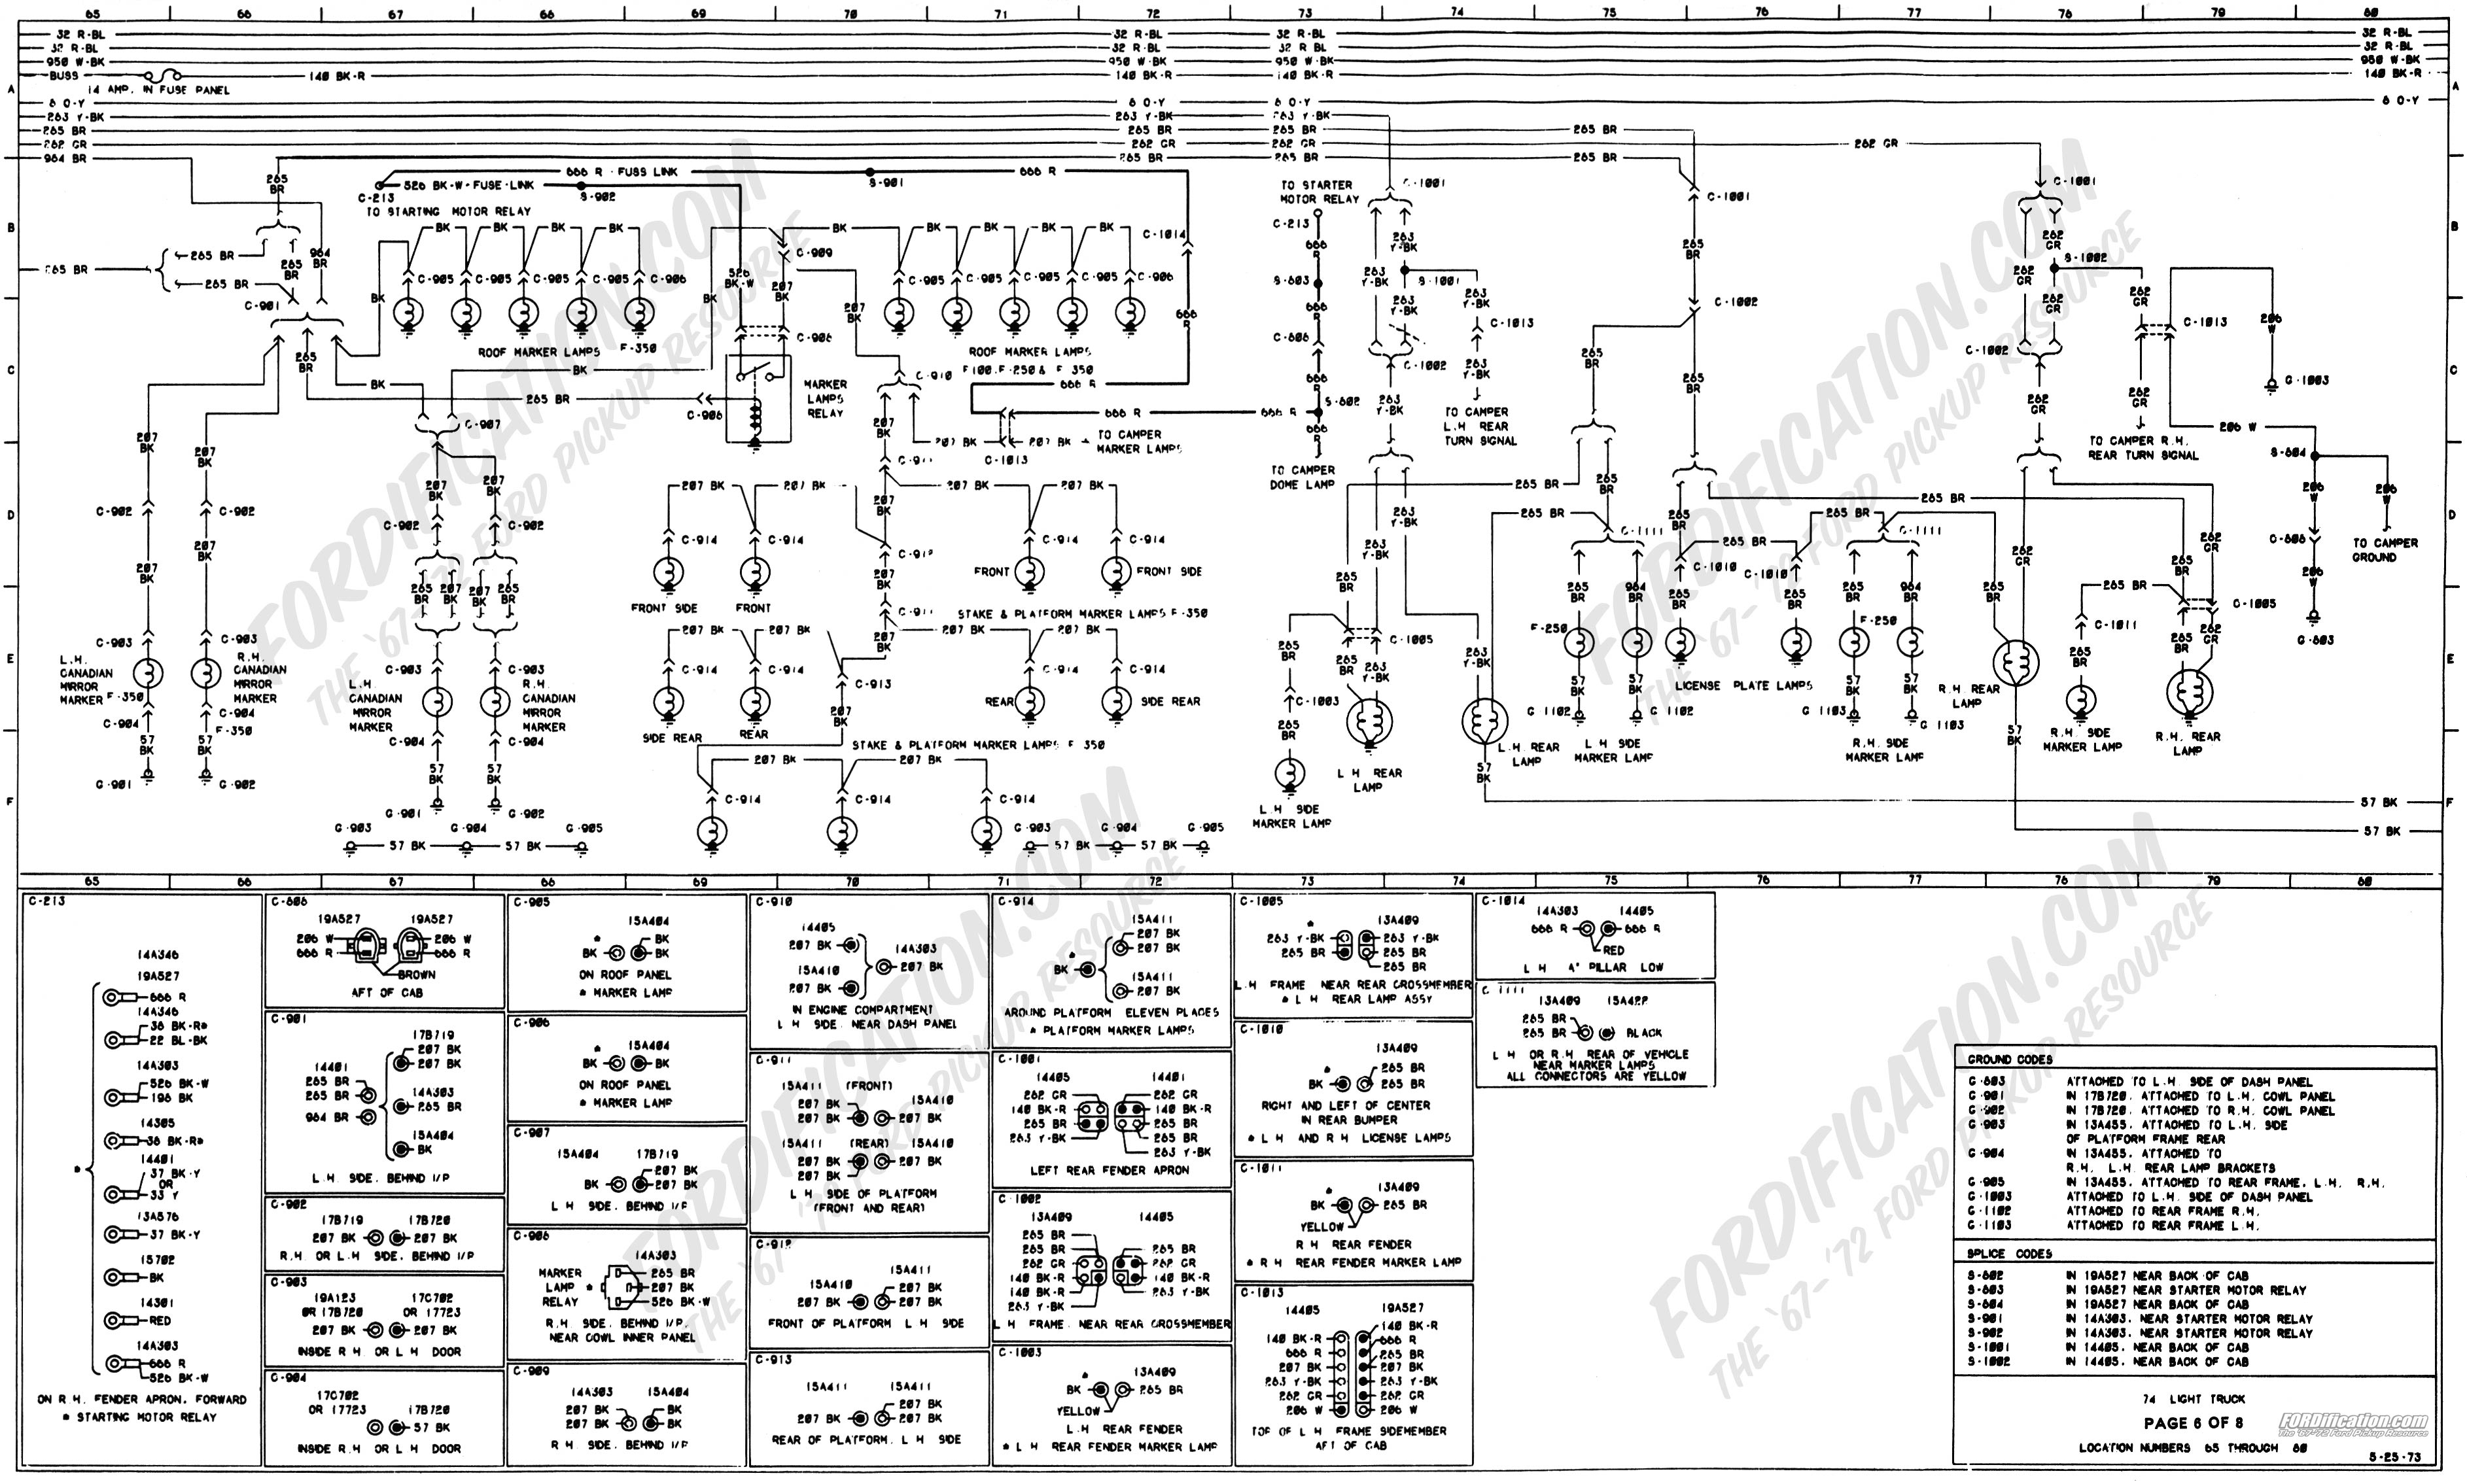 81 Ford F100 Wiring Diagram - Wiring Diagram Data Oreo - Ford F250 Wiring Diagram